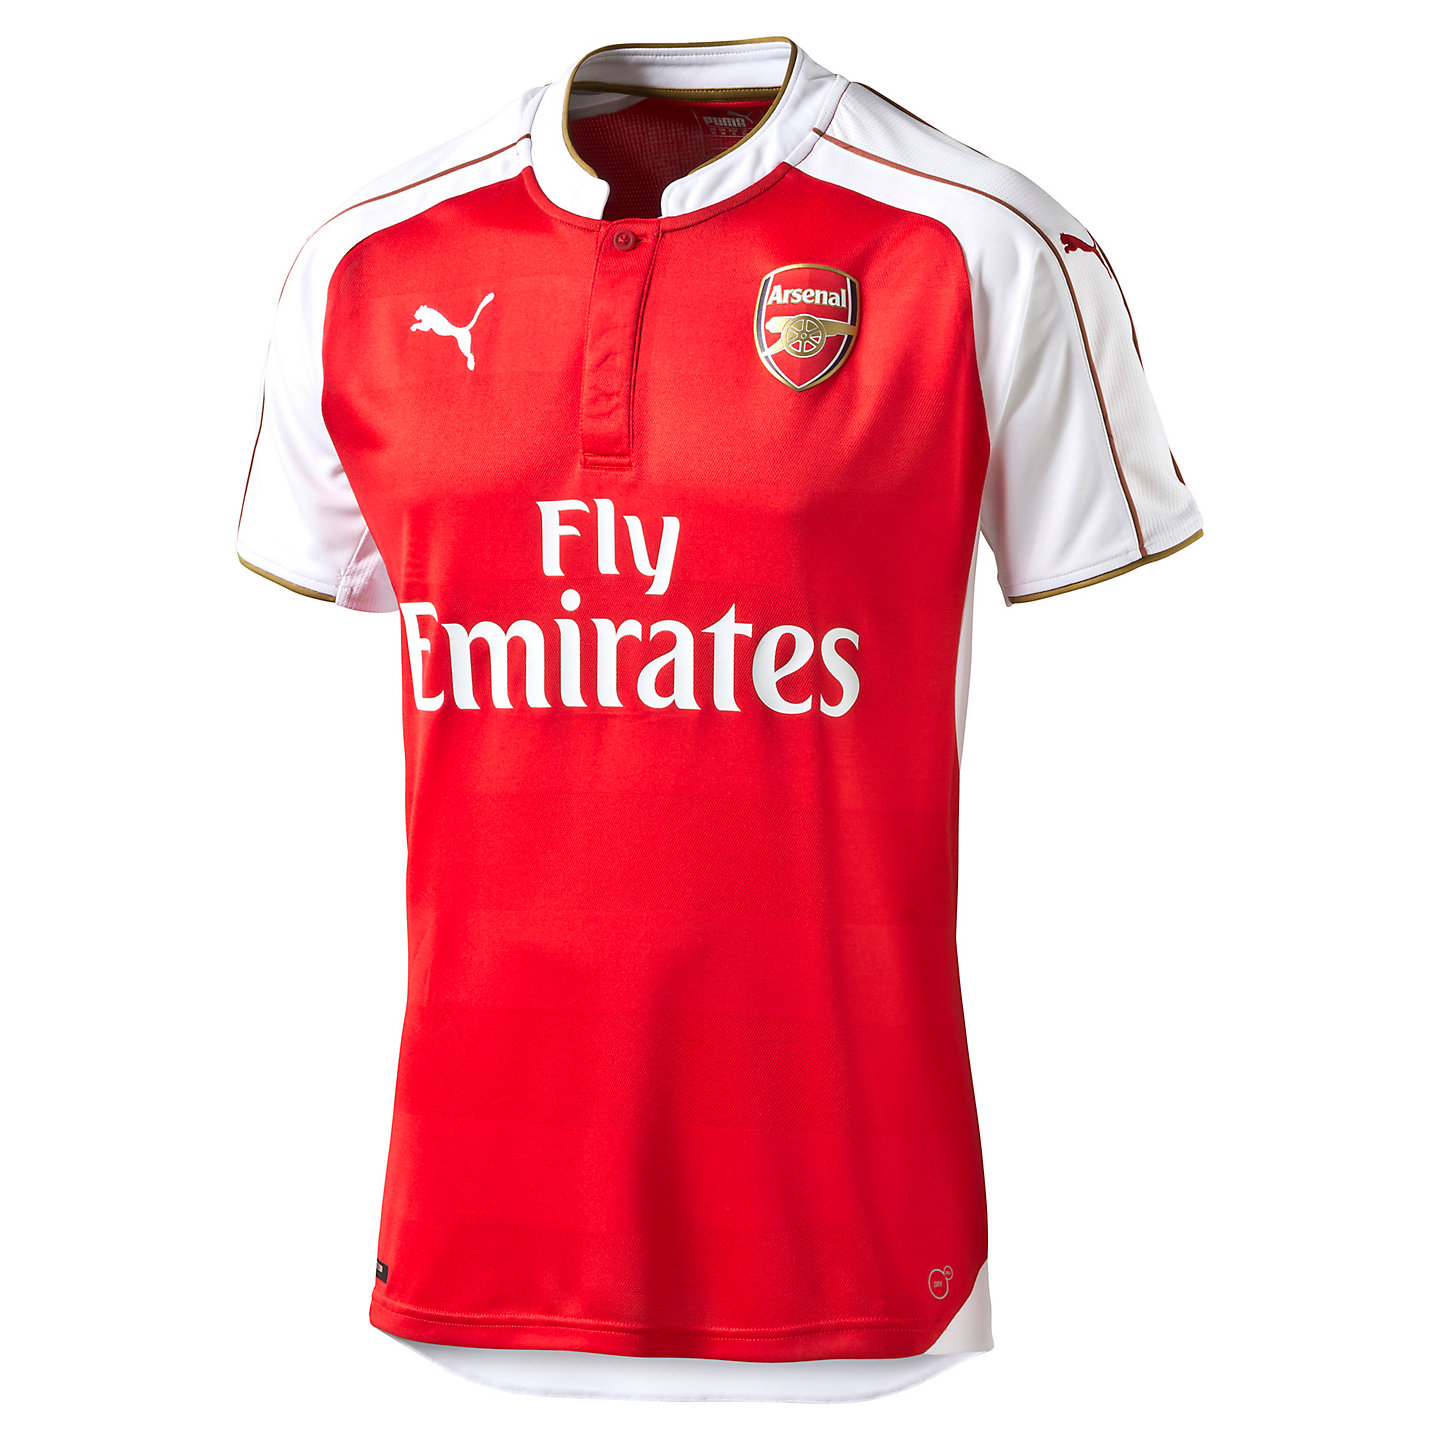 Puma Arsenal Uomo Home Stadium Stadium Stadium Jersey 2015/16 (Model 747566) (Uomo) 351115